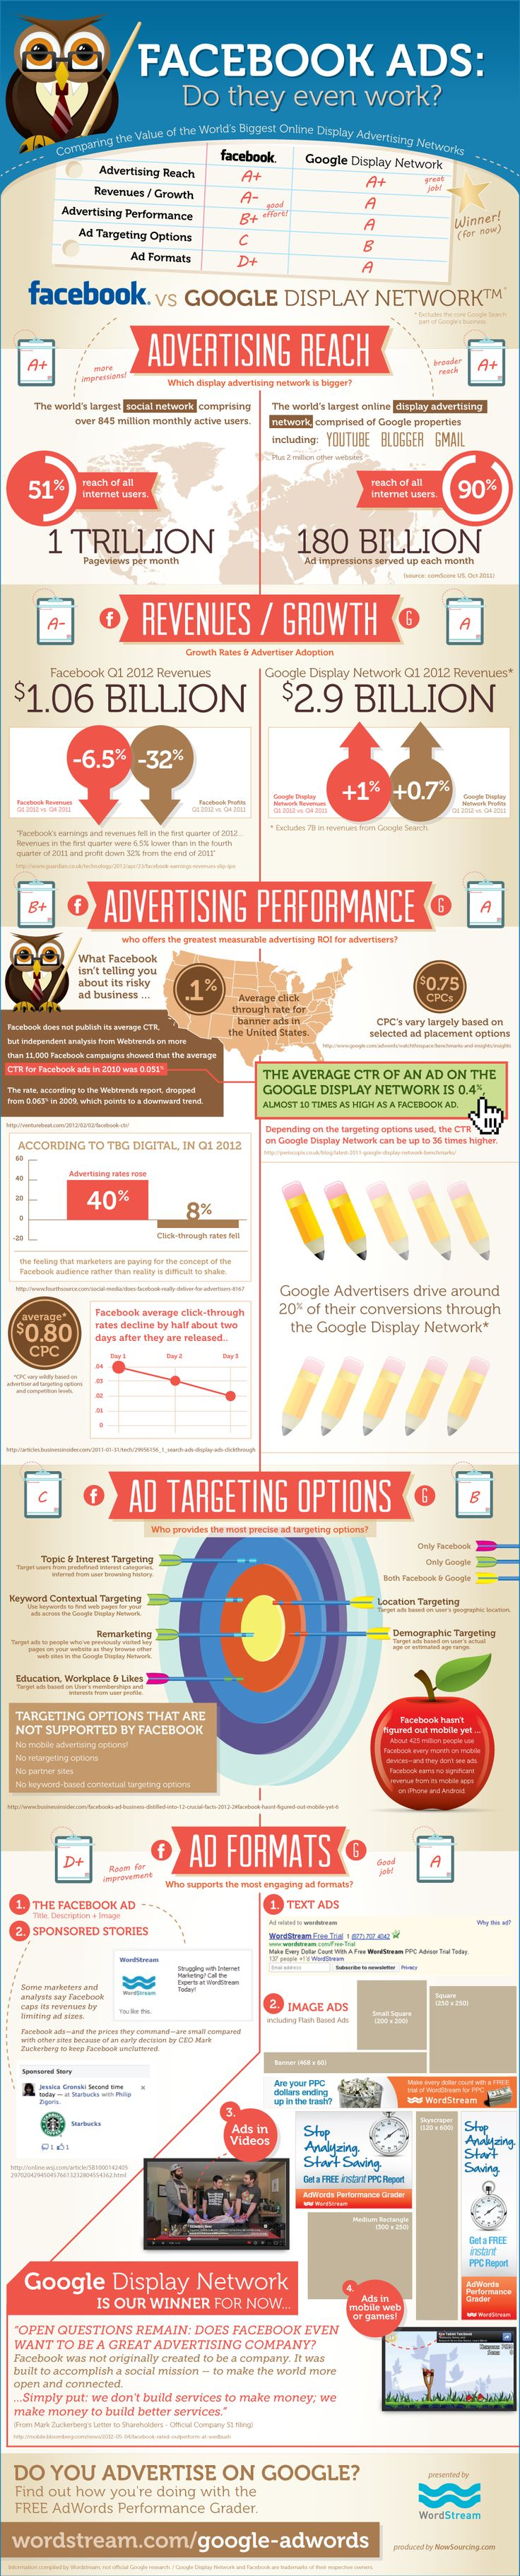 How Much Is Facebook Really Worth? Comparing Facebook Advertising vs. Google Display Network [Infographic]